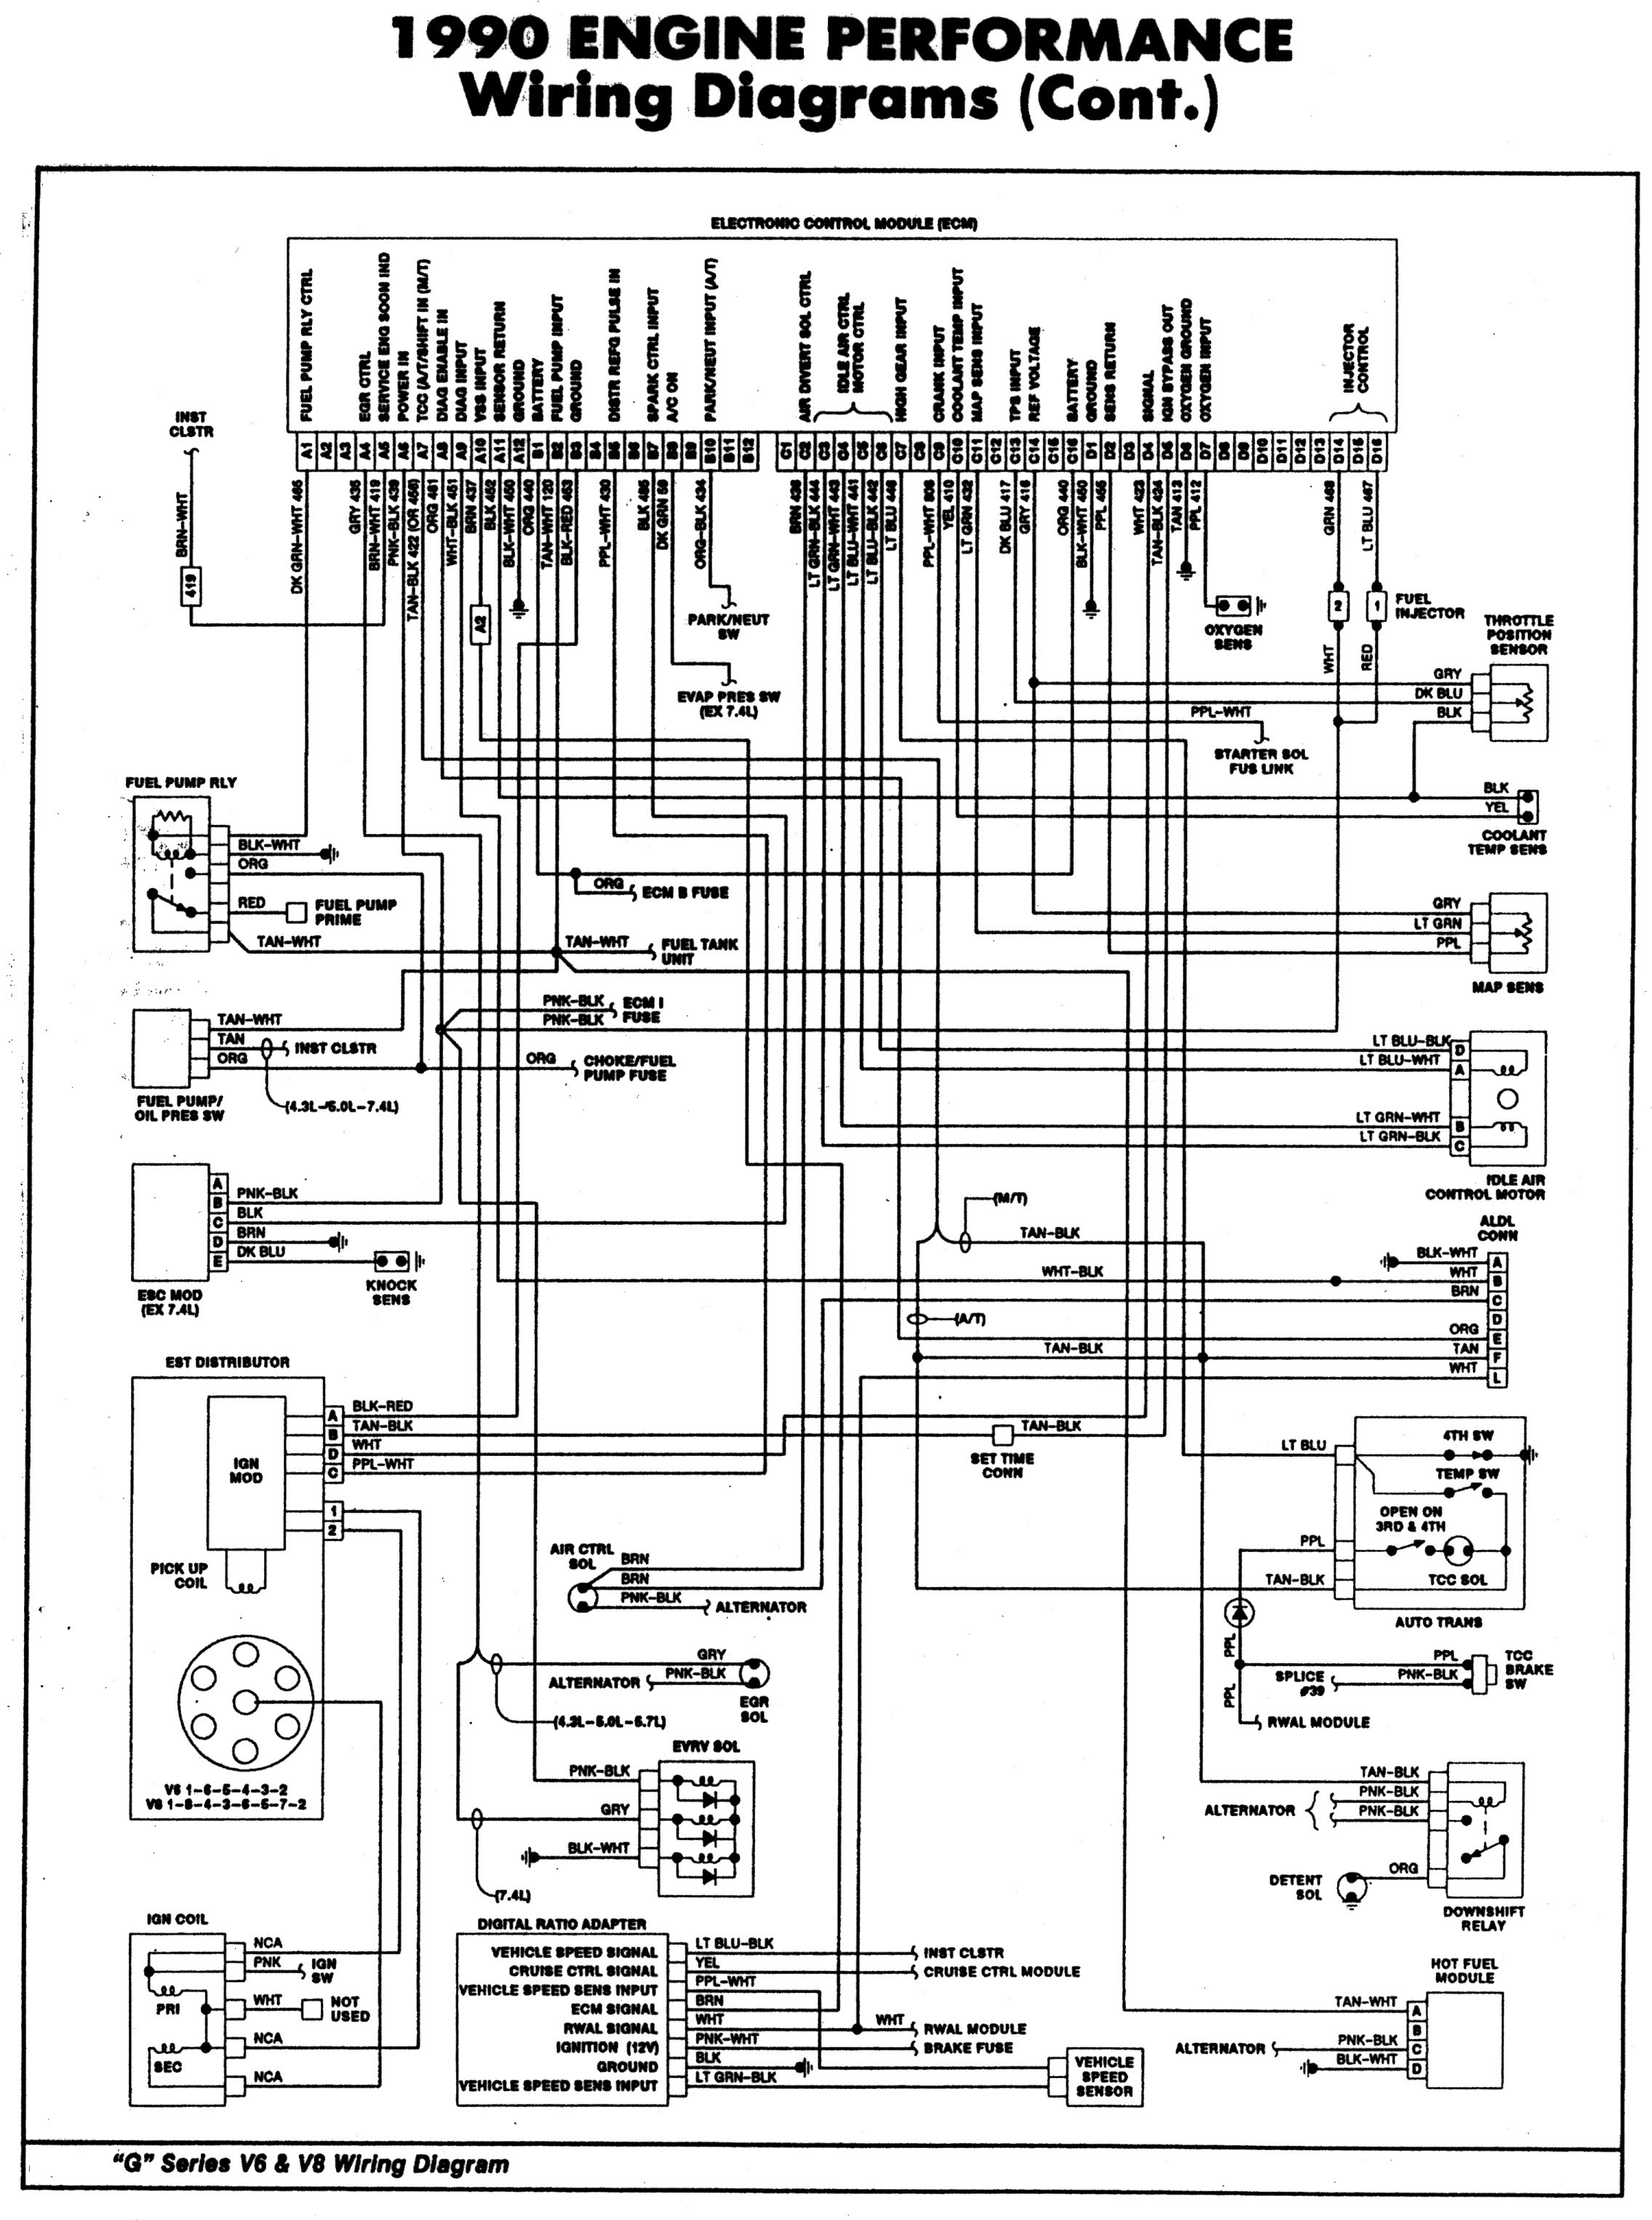 2003 S10 Wiring Harness Diagram | Wiring Diagram  Blazer Wiring Diagram on